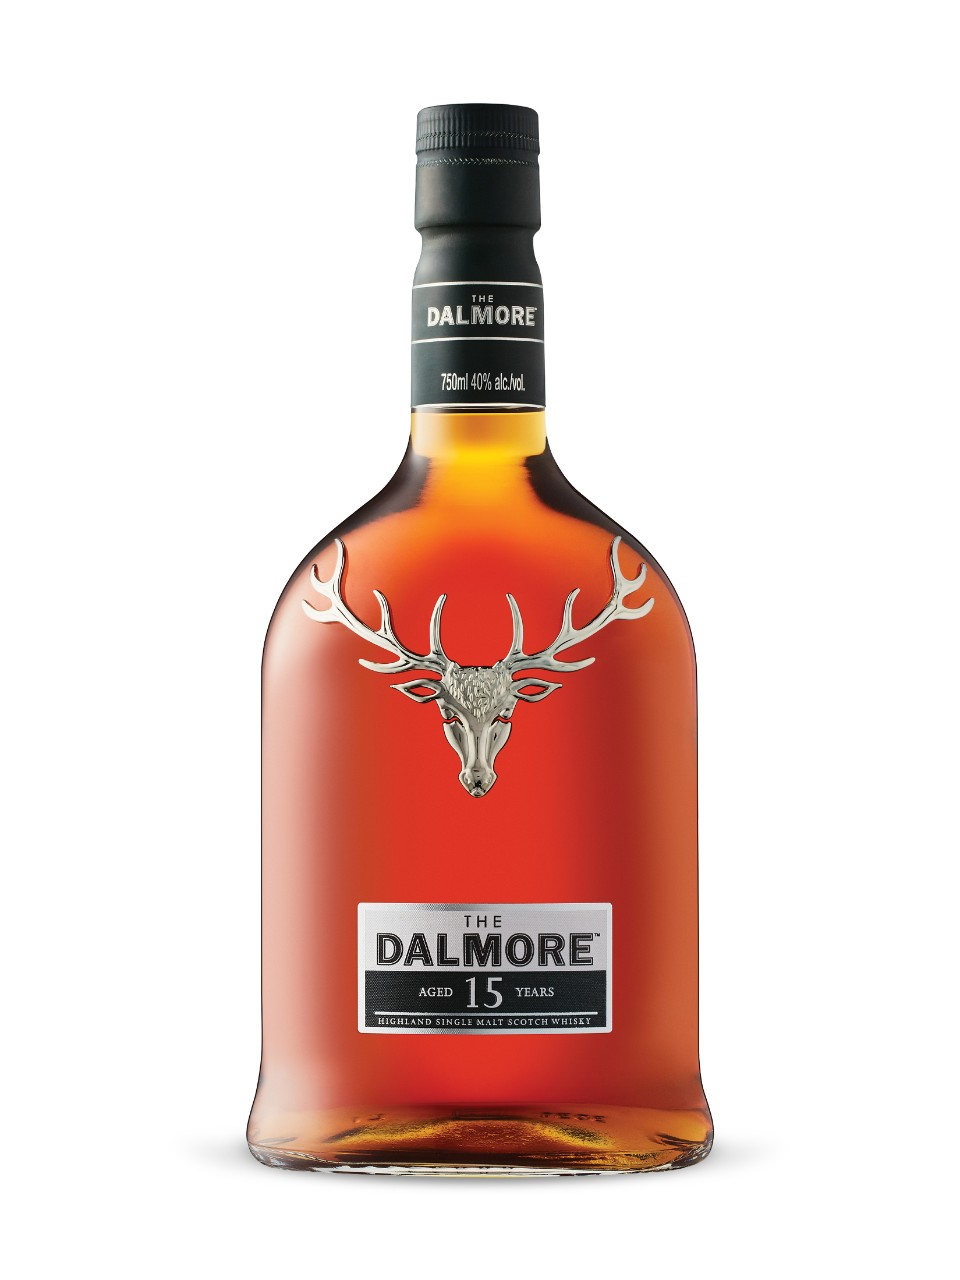 The Dalmore 15 Year Old Highland Single Malt Scotch Whisky from LCBO